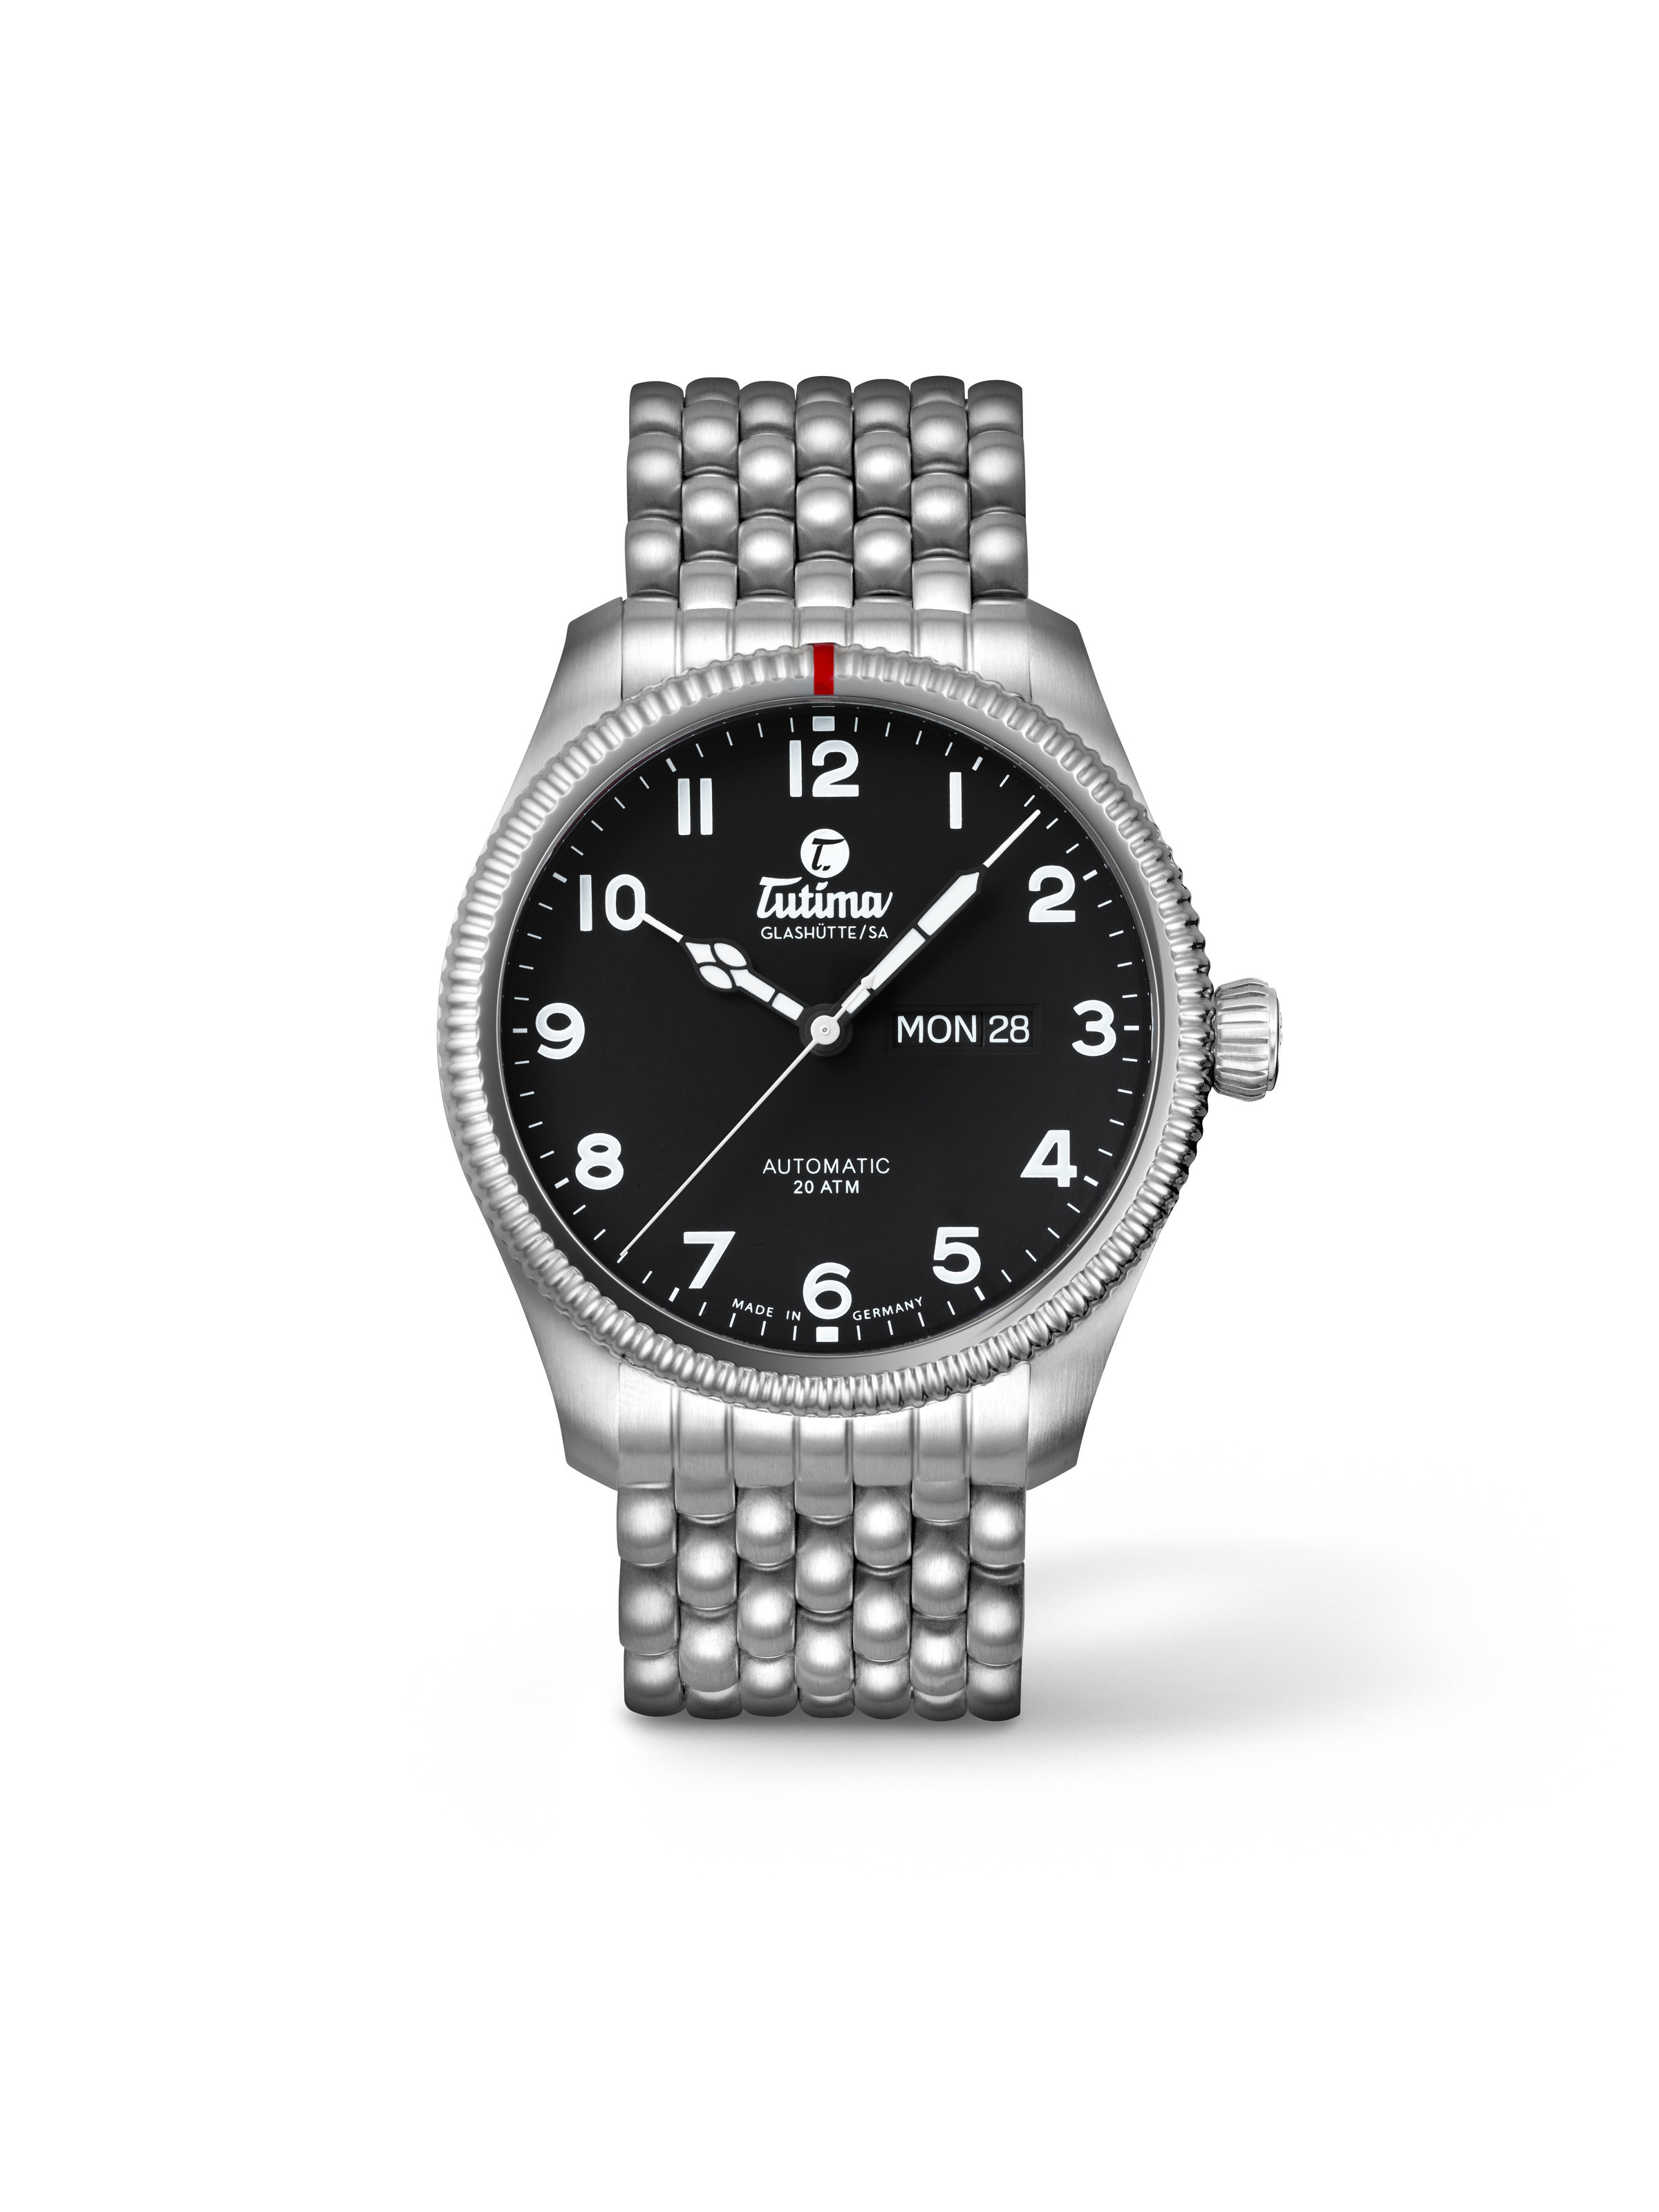 Grand Flieger Classic Automatic